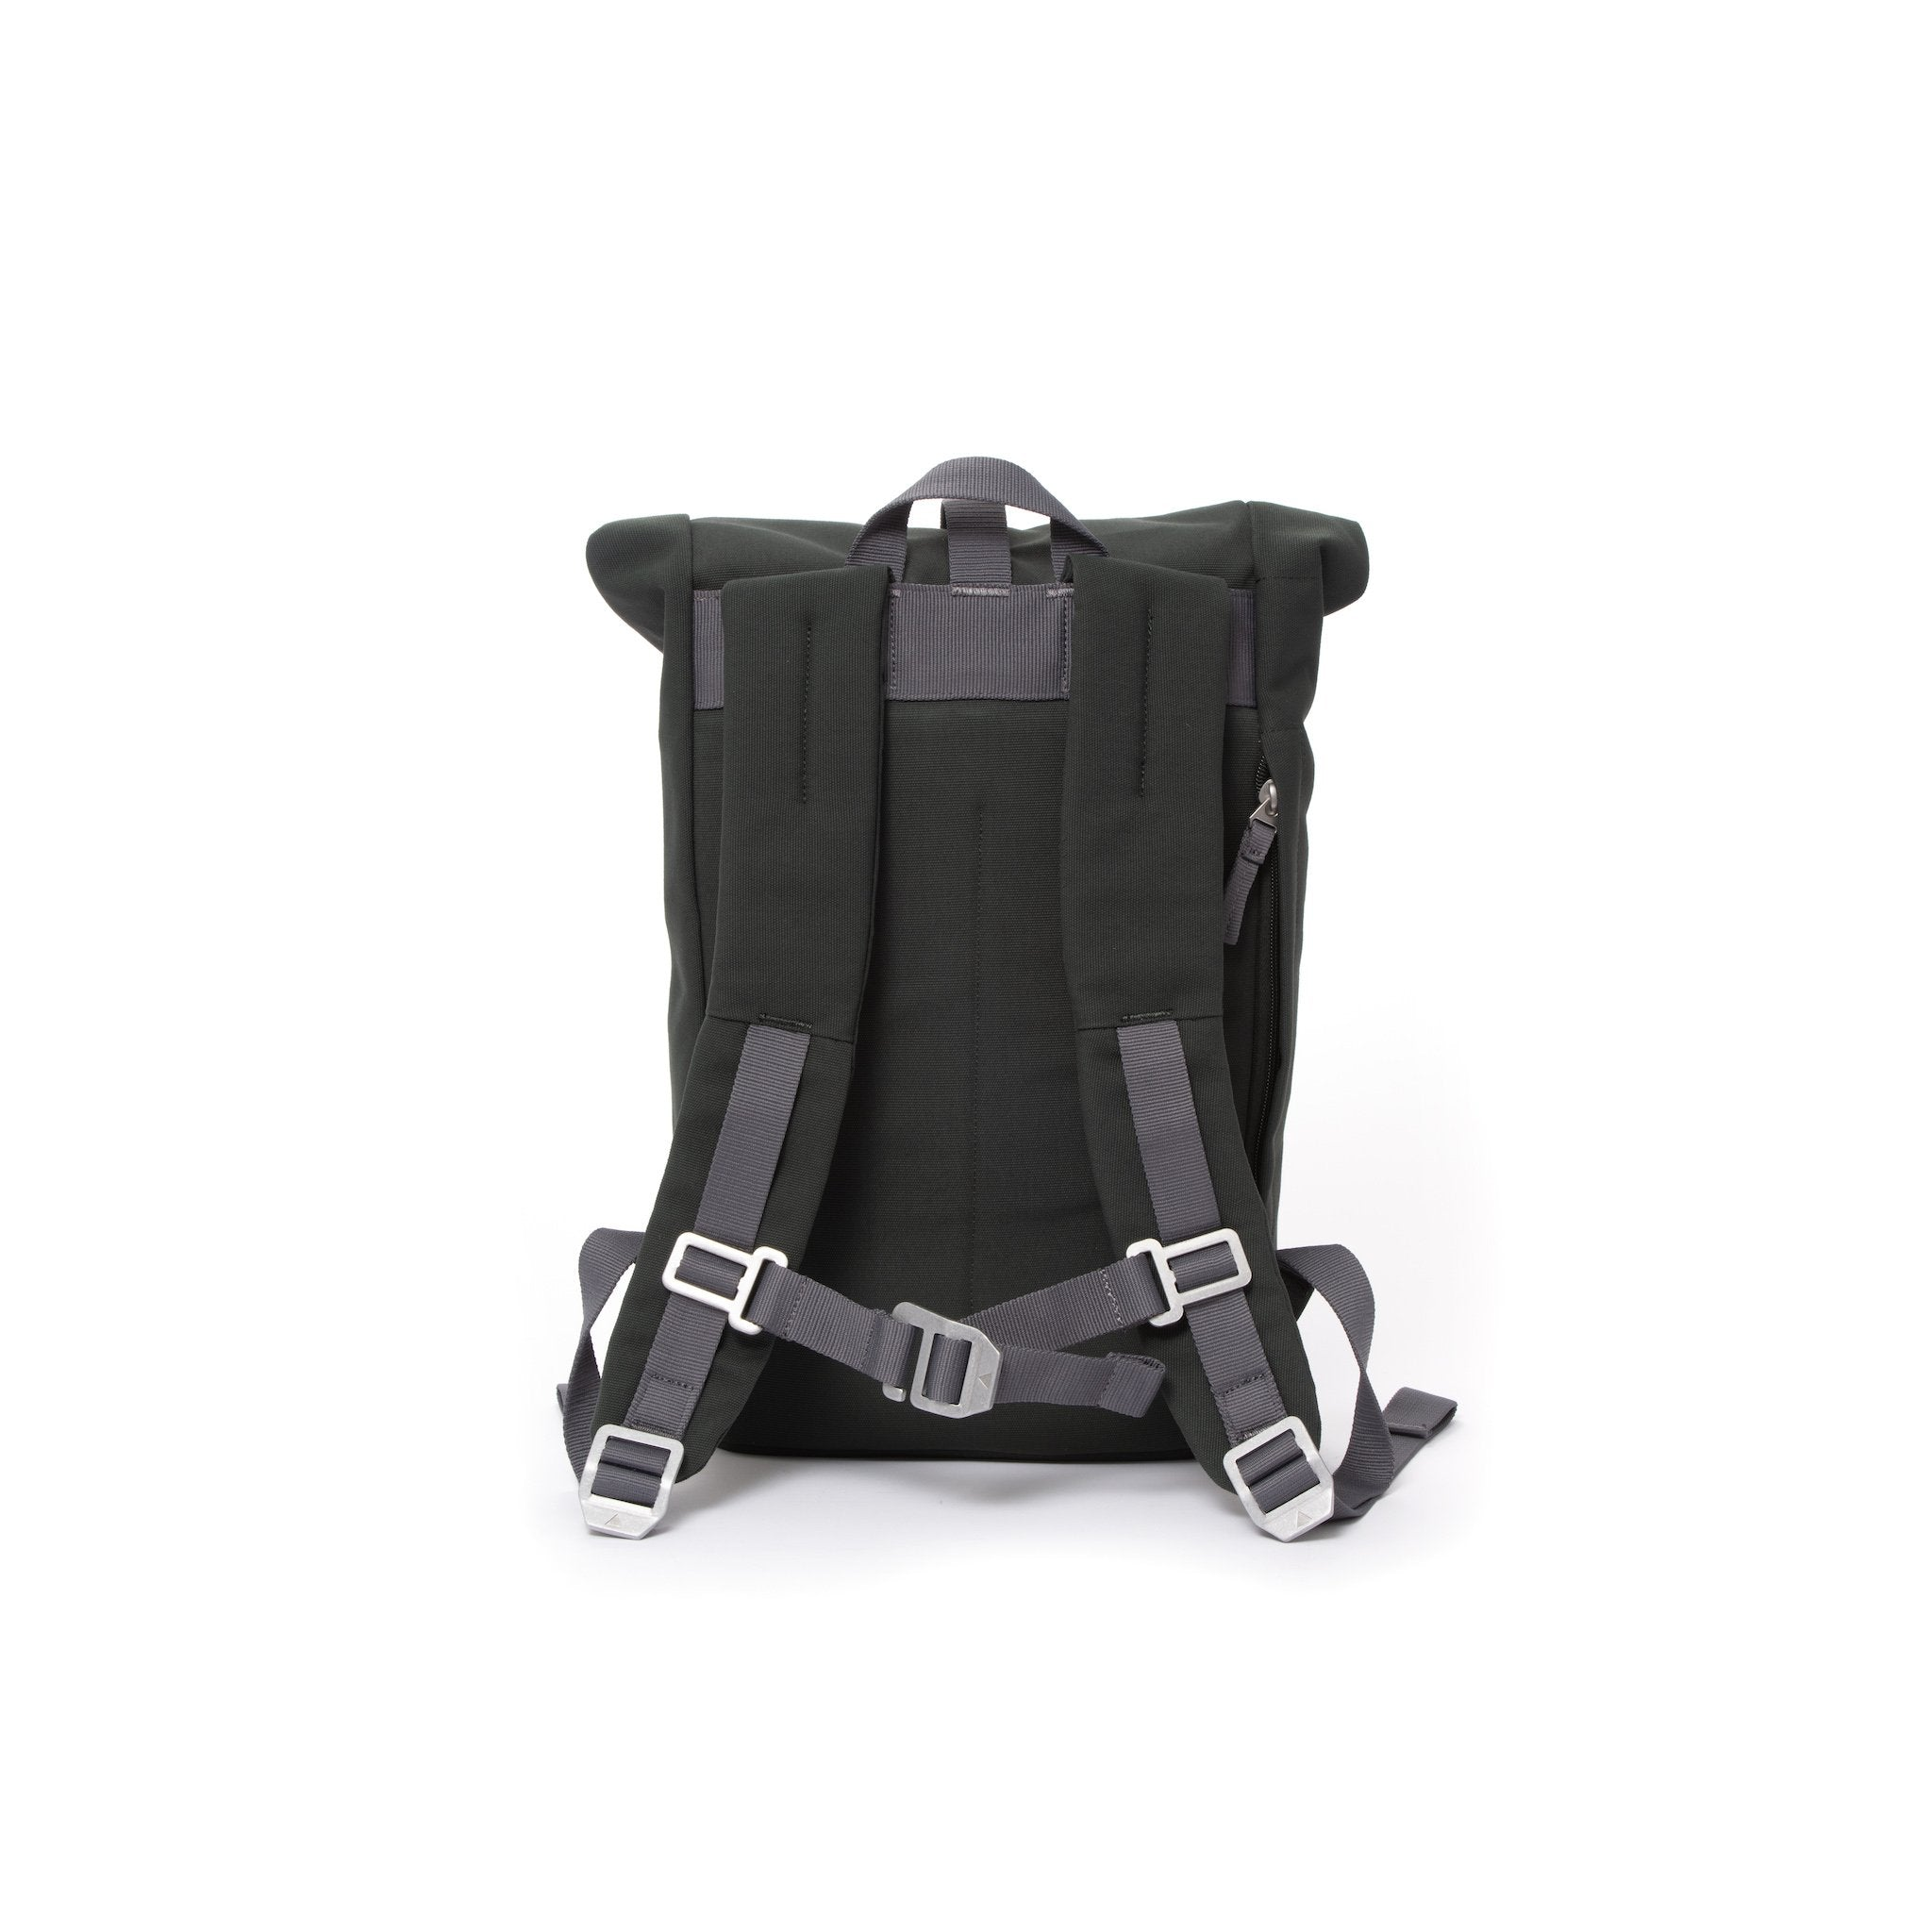 Grey small rolltop backpack with padded shoulder straps and chest strap.